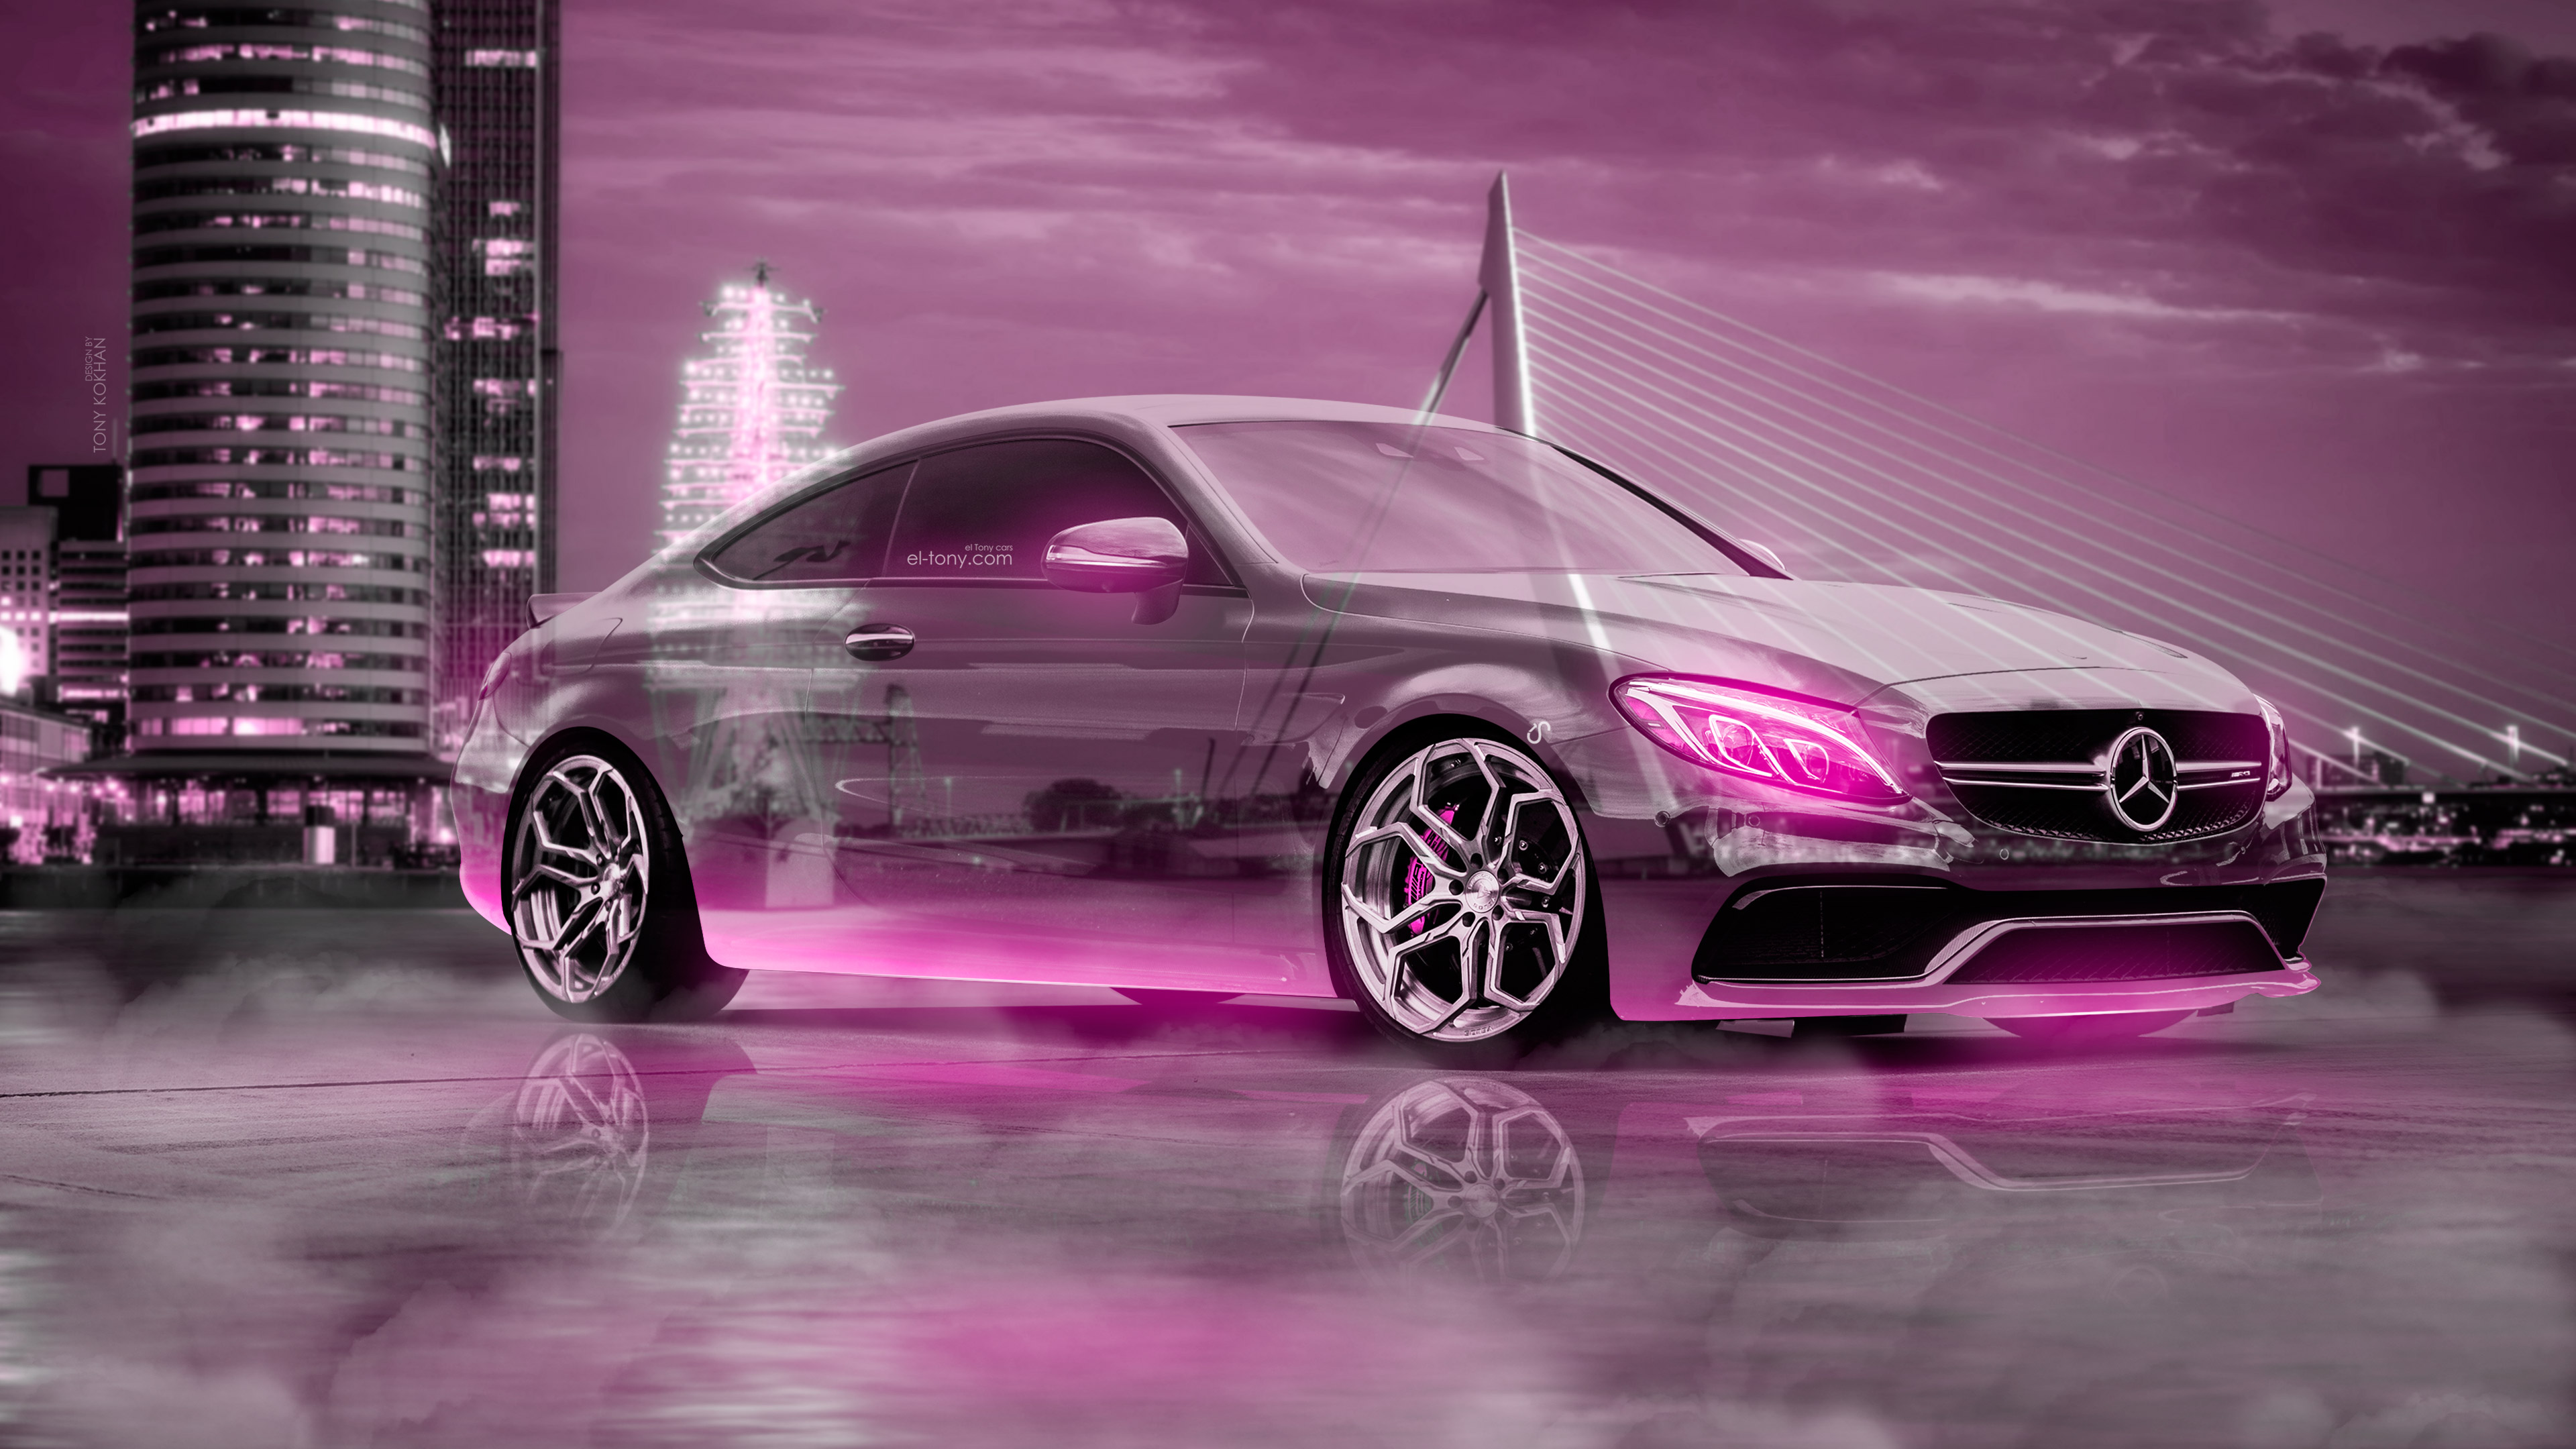 Mercedes-Benz C63S AMG Сoupe Crystal City Rotterdam ...